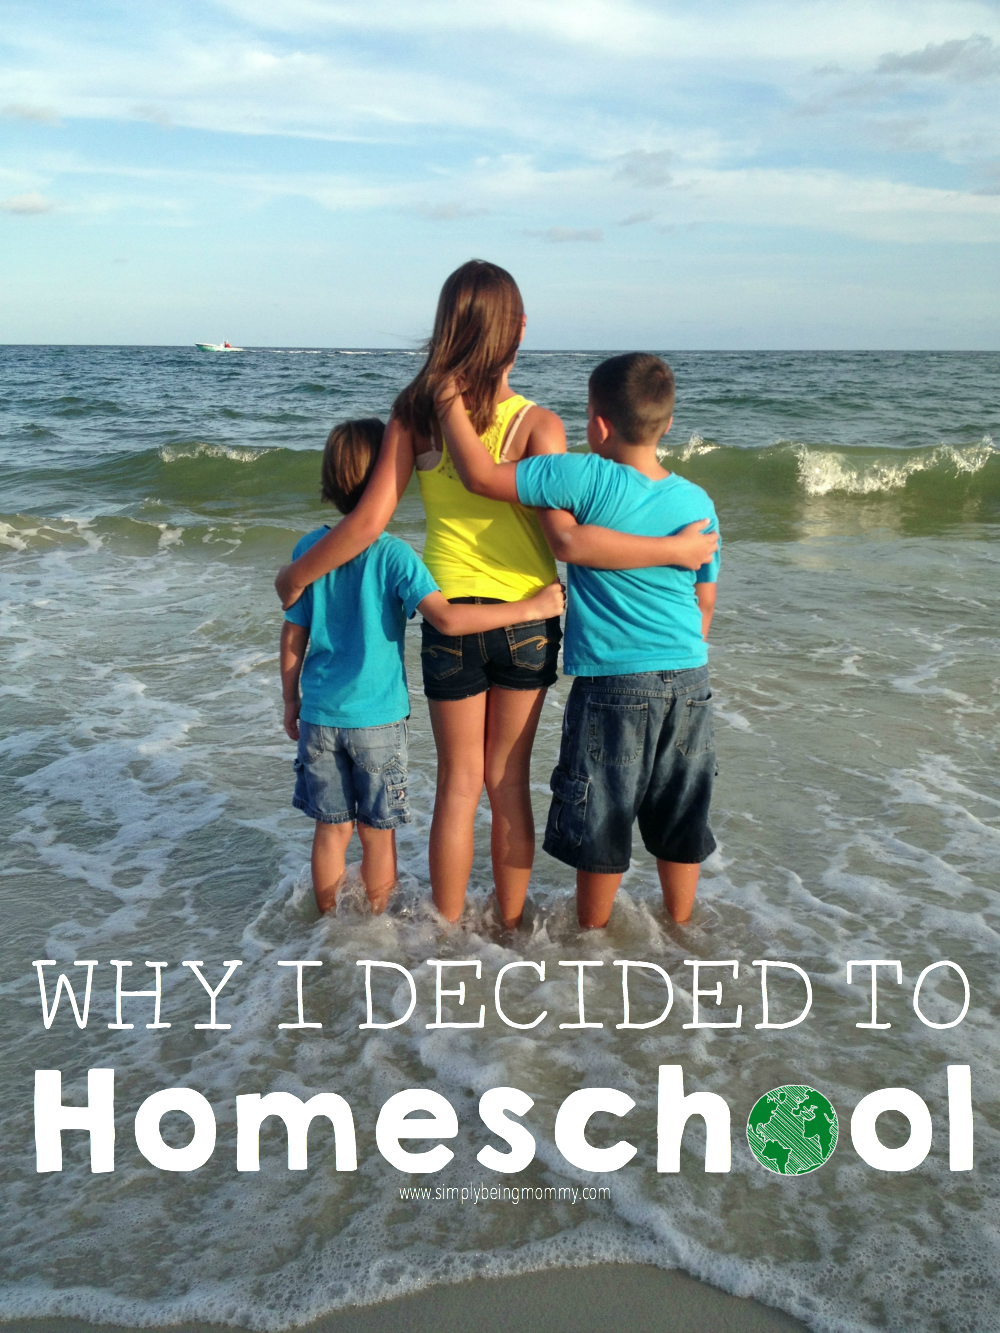 I open up a bit and show you my heart as I try to put into words why I decided to homeschool my children.